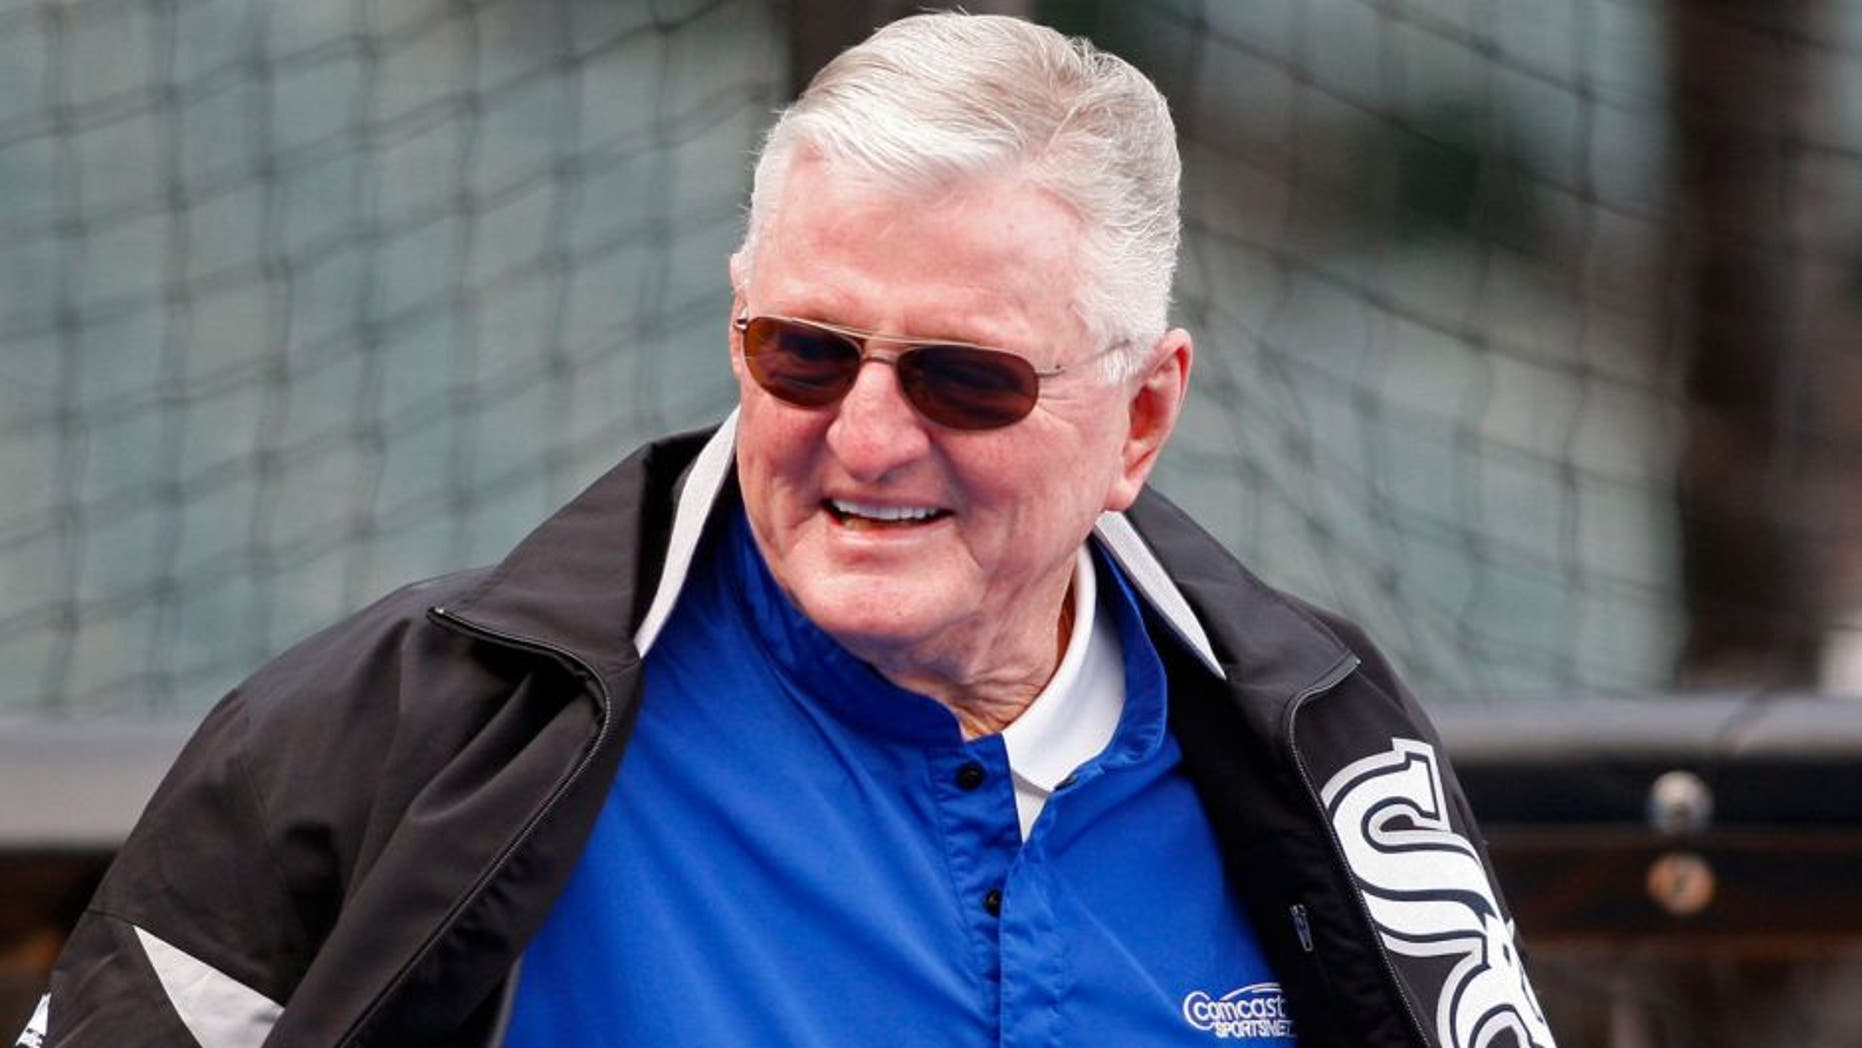 May 20, 2011; Chicago, IL, USA; Chicago White Sox television announcer Ken Harrelson before the game against the Los Angeles Dodgers at US Cellular Field. Mandatory Credit: Jerry Lai-USA TODAY Sports